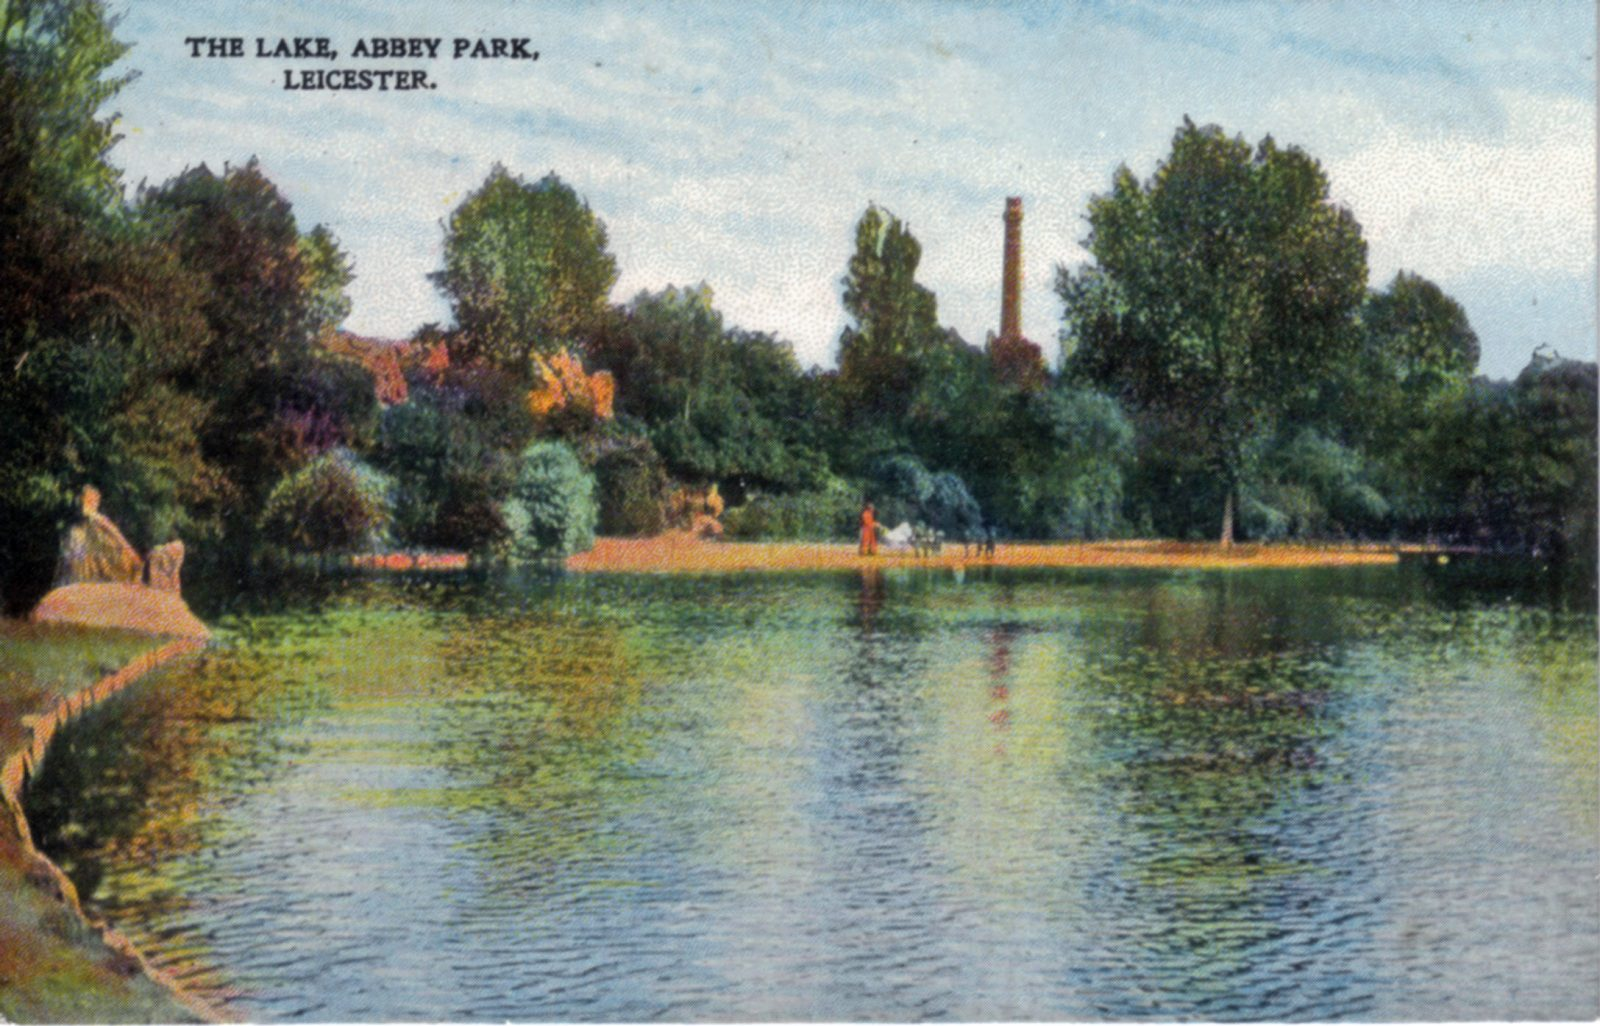 Abbey Park, Leicester. 1901-1920: The lake with distant figures. (File:1038)